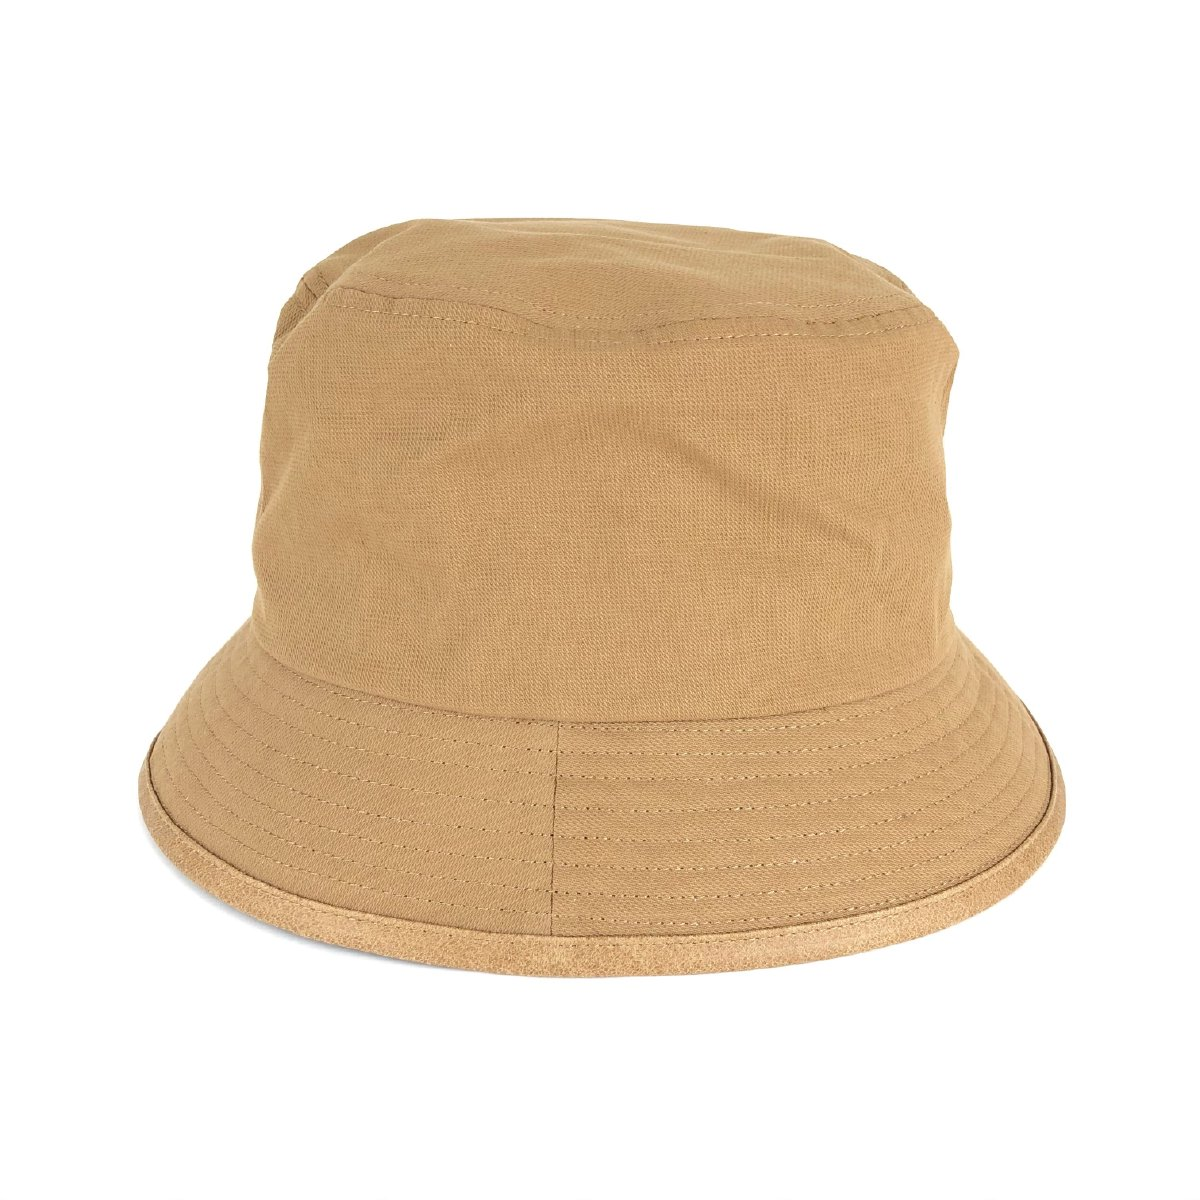 Leather Piping Hat 詳細画像11